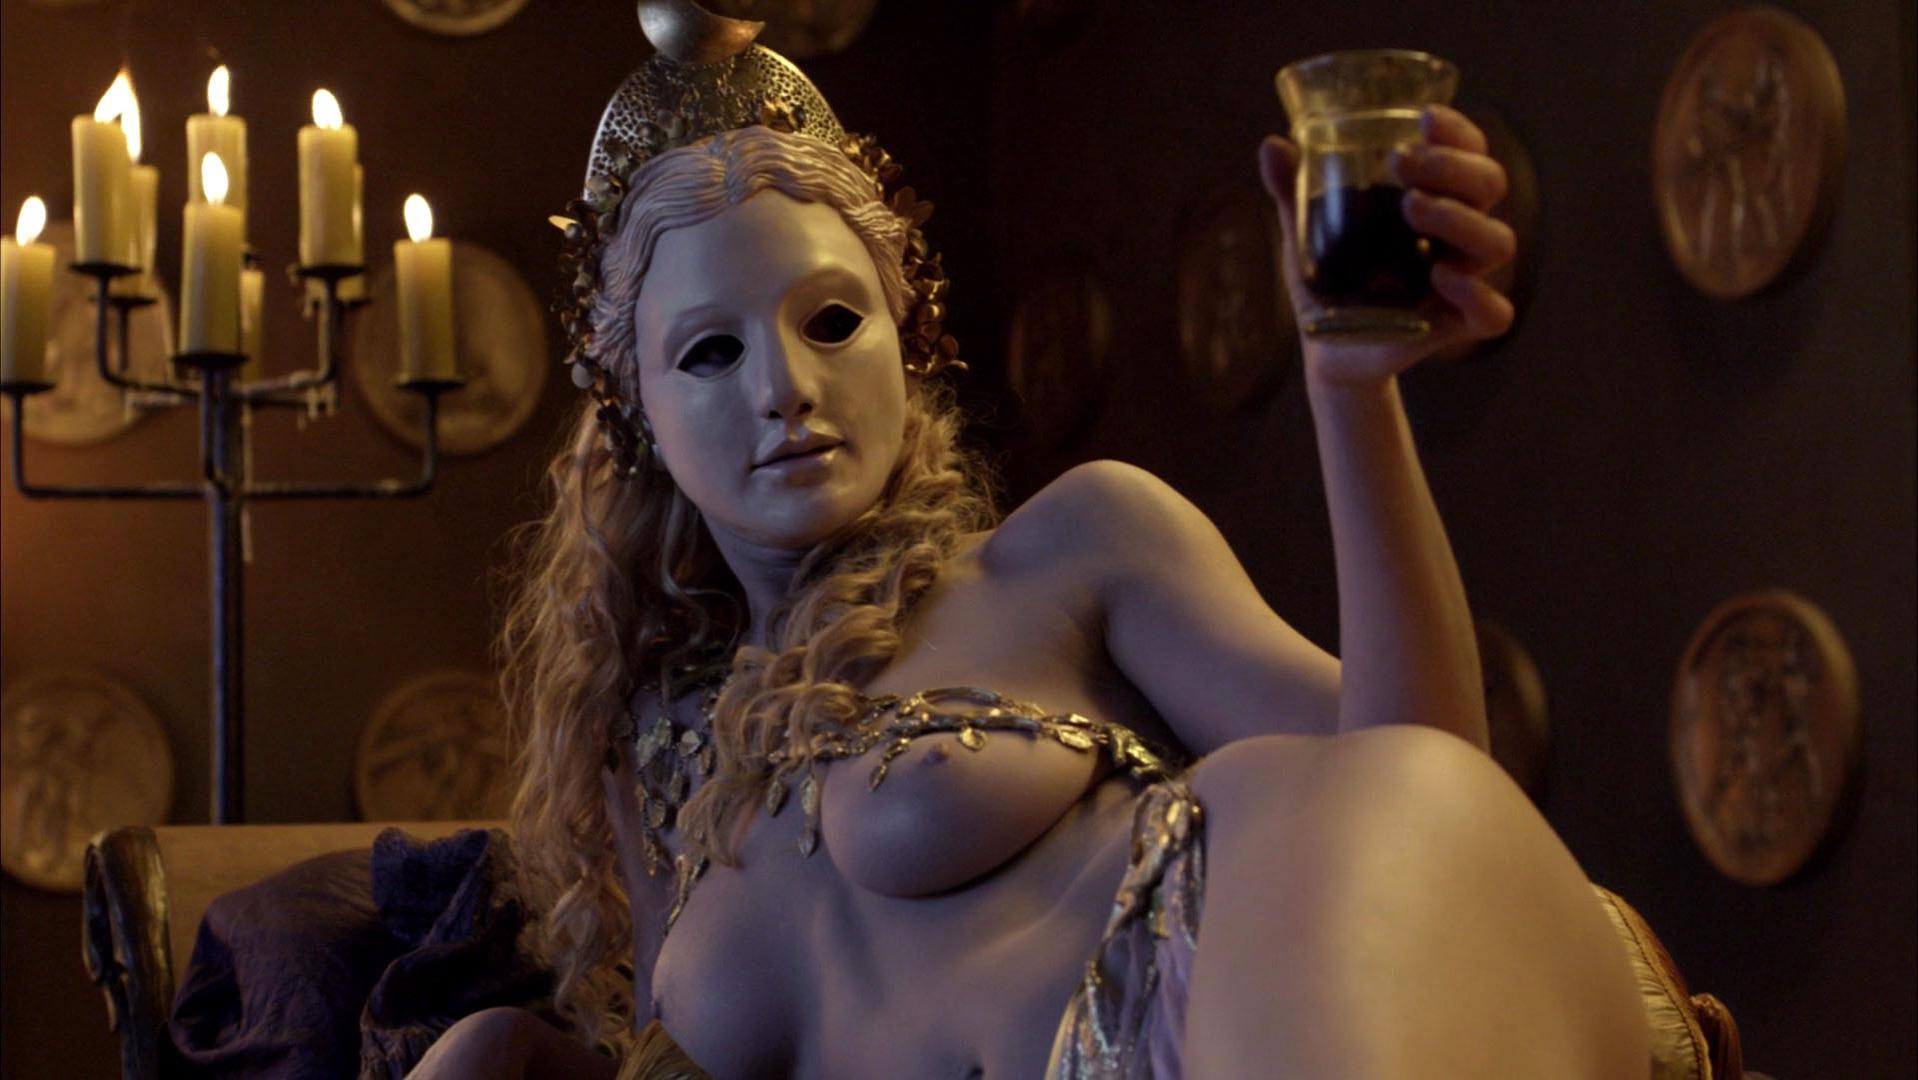 Viva Bianca nude - Spartacus: Blood and Sand s01e09 (2010)